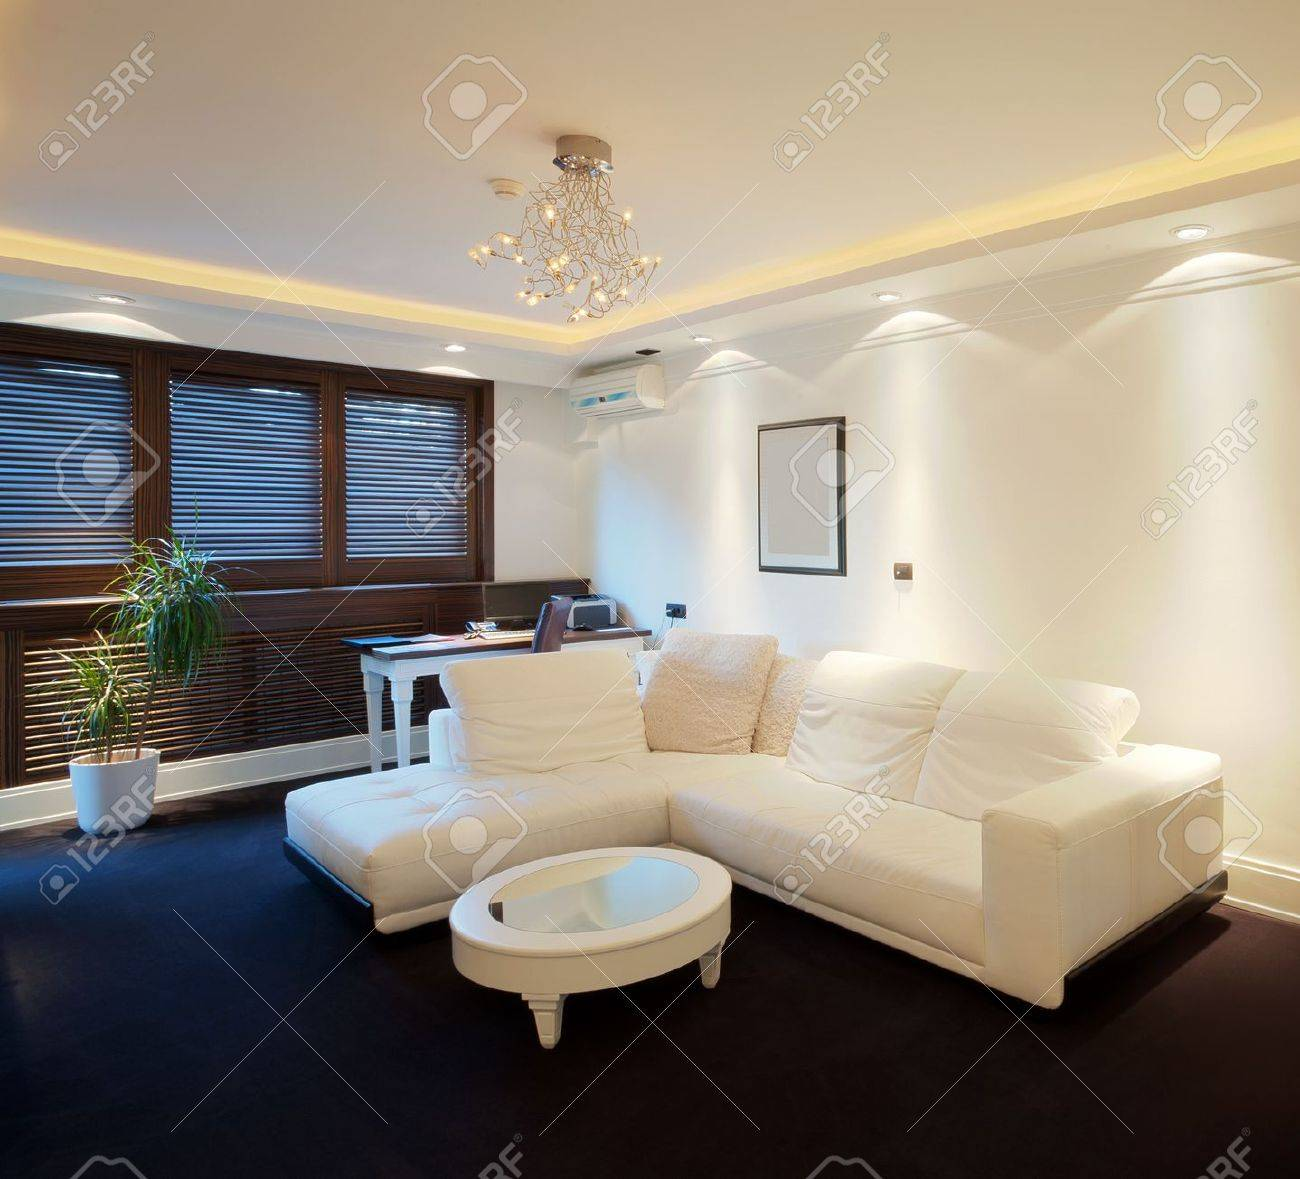 Interior of a hotel apartment with furniture, modern contemporary design. Stock Photo - 10508376